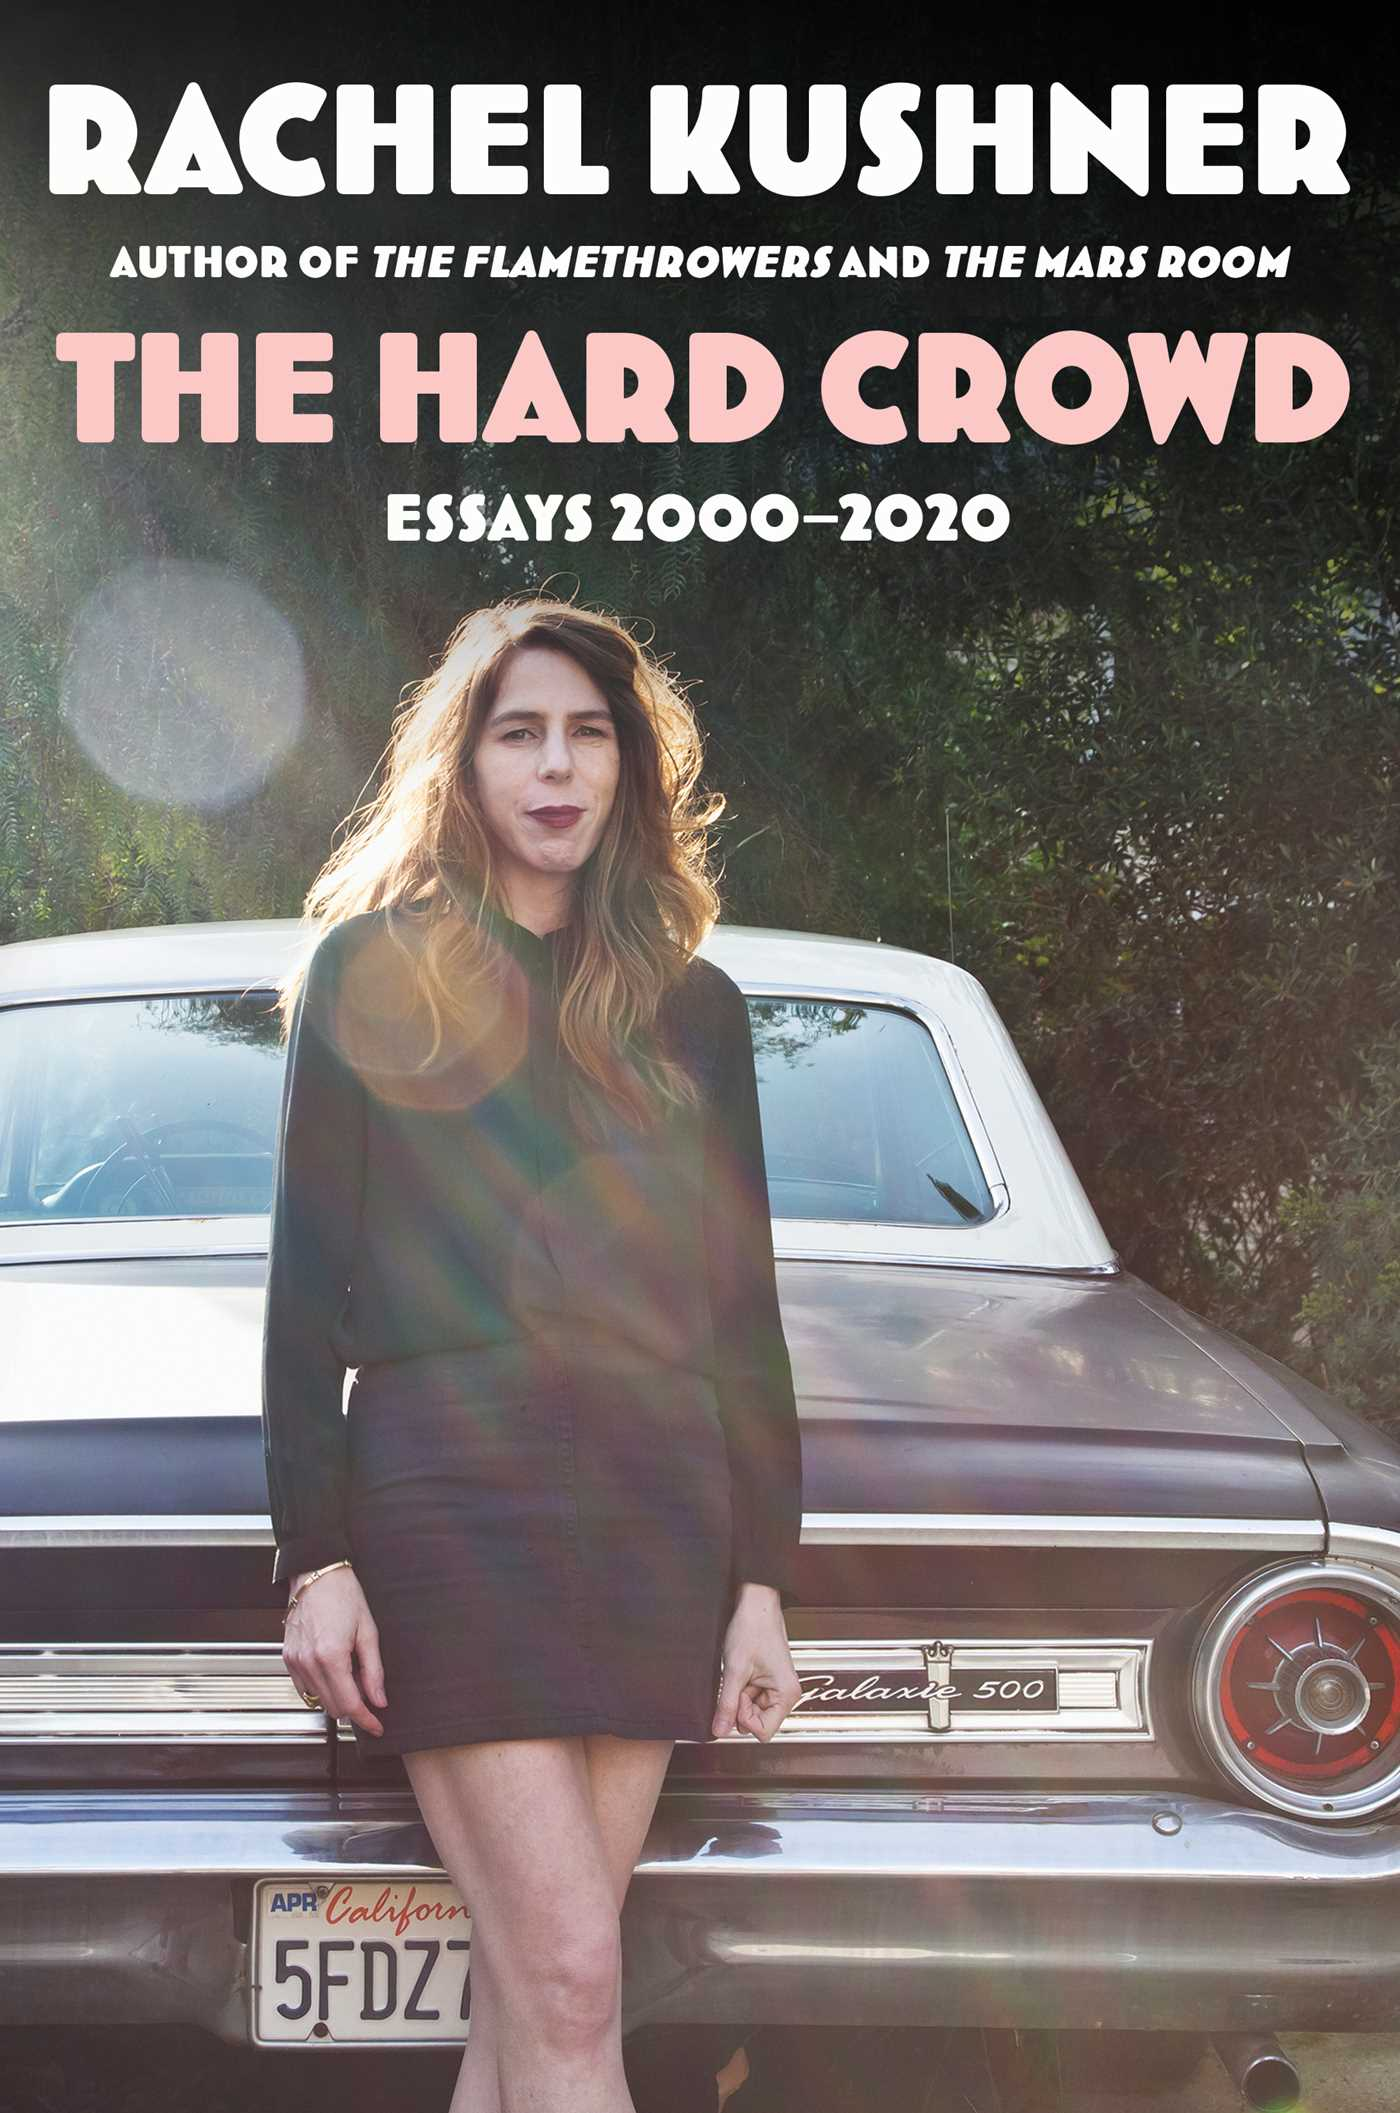 The Hard Crowd: Essays 2000-2020